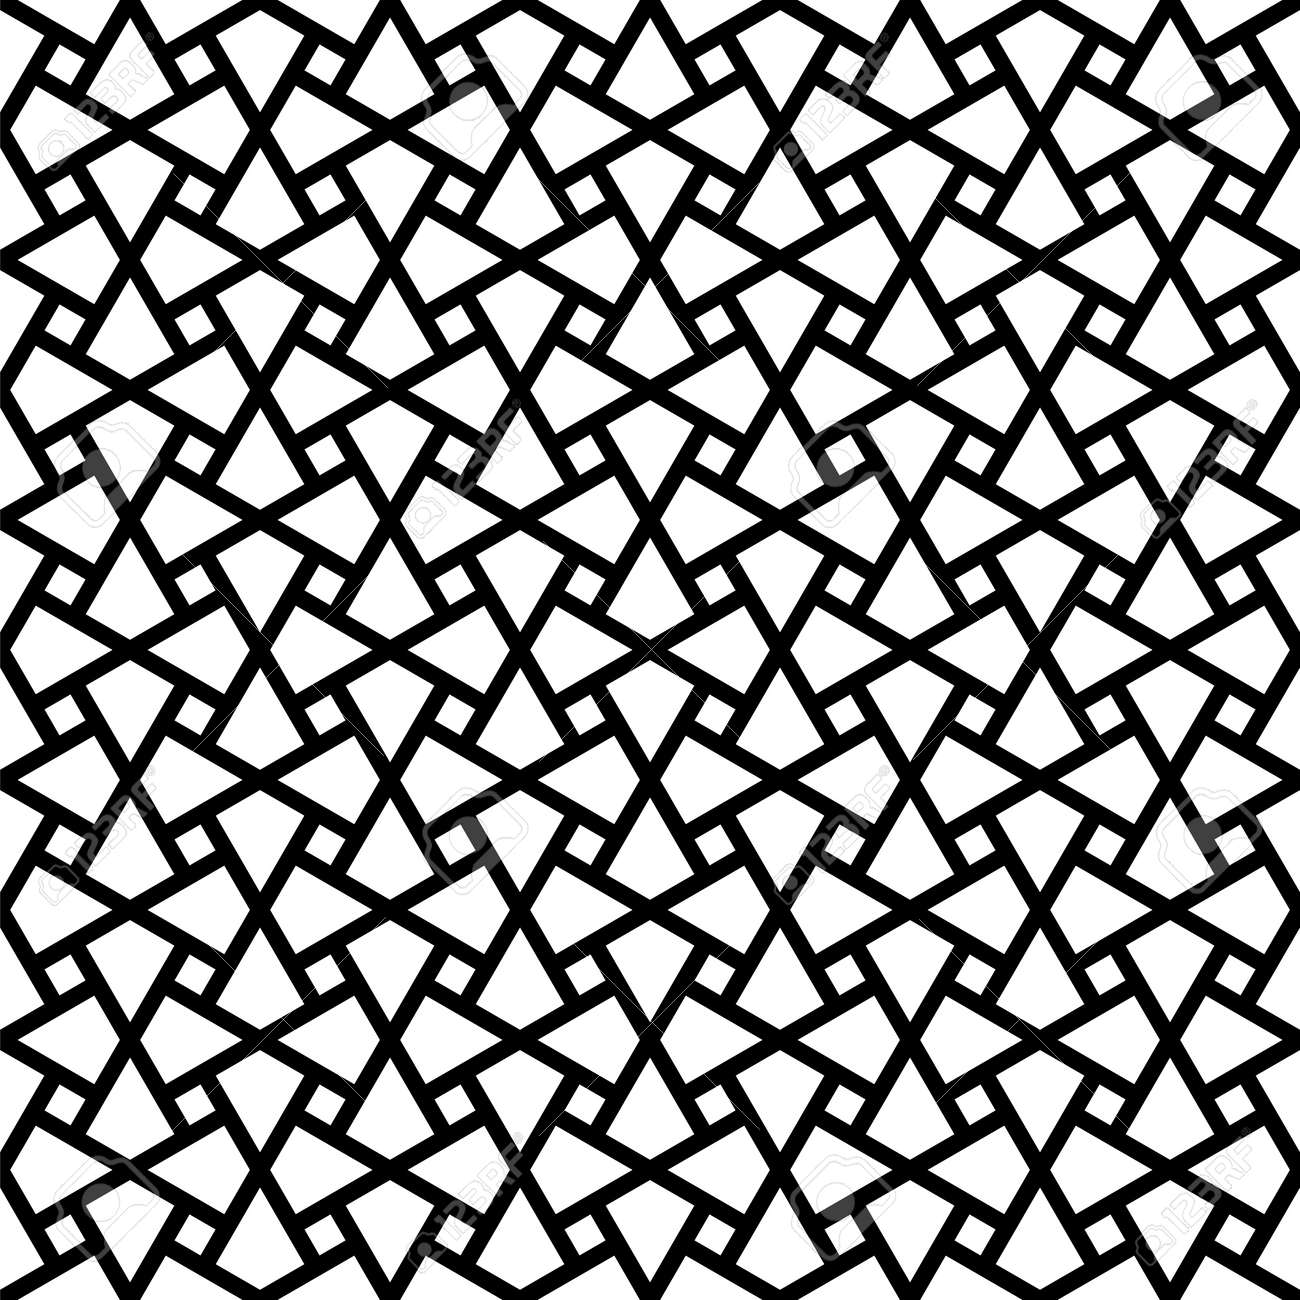 Seamless geometric ornament based on traditional arabic art. Muslim mosaic.Black and white lines.Great design for fabric, textile, cover, wrapping paper, background, laser cutting.Thick lines. - 156468598